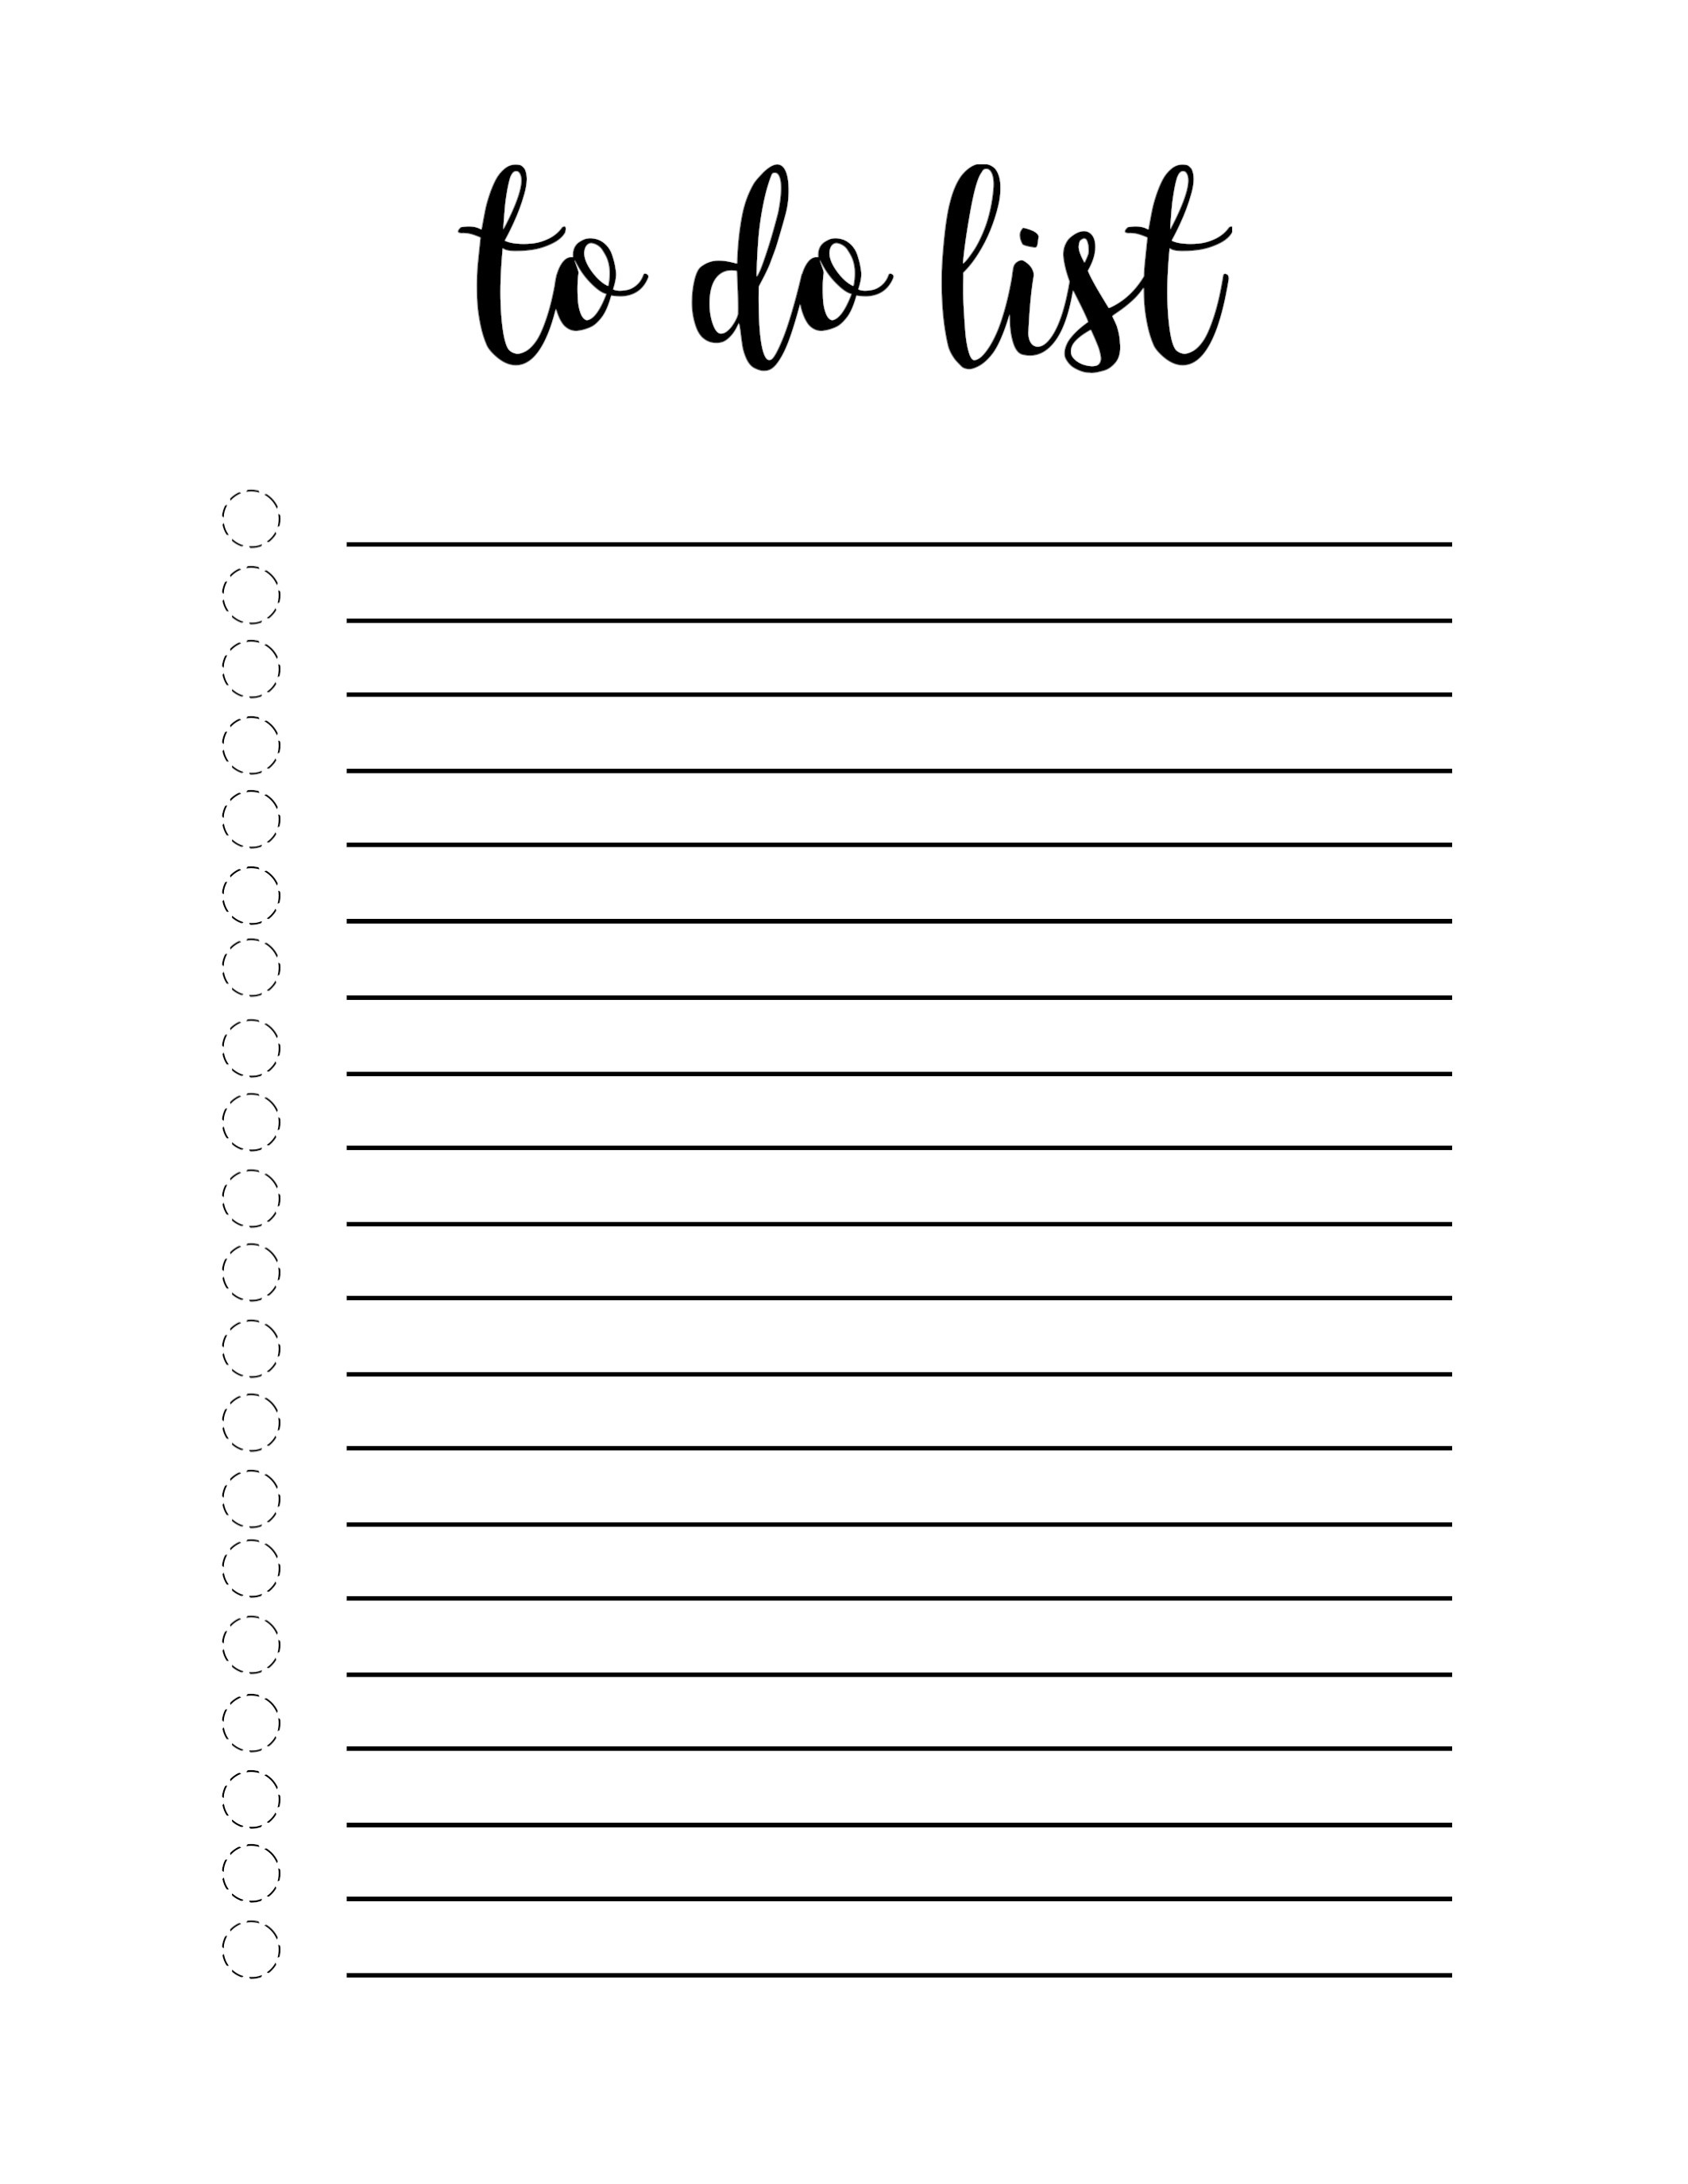 Free Printable To Do List Template - Paper Trail Design - To Do Template Free Printable